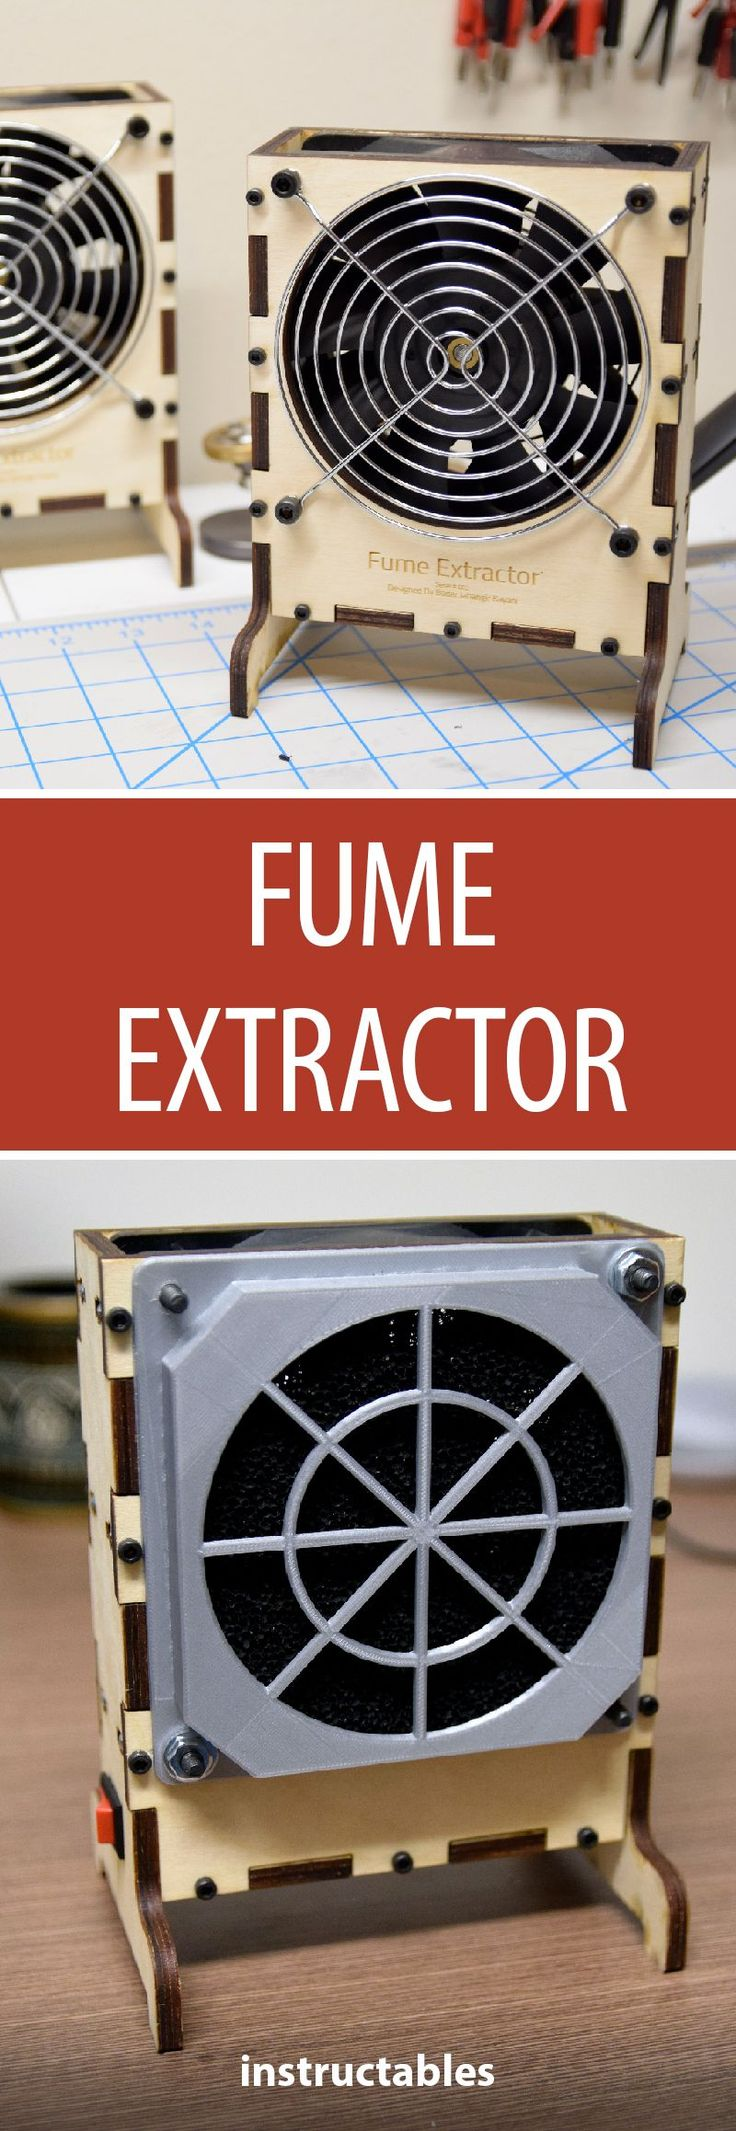 Fume extractor diy electronics electronics projects fumes